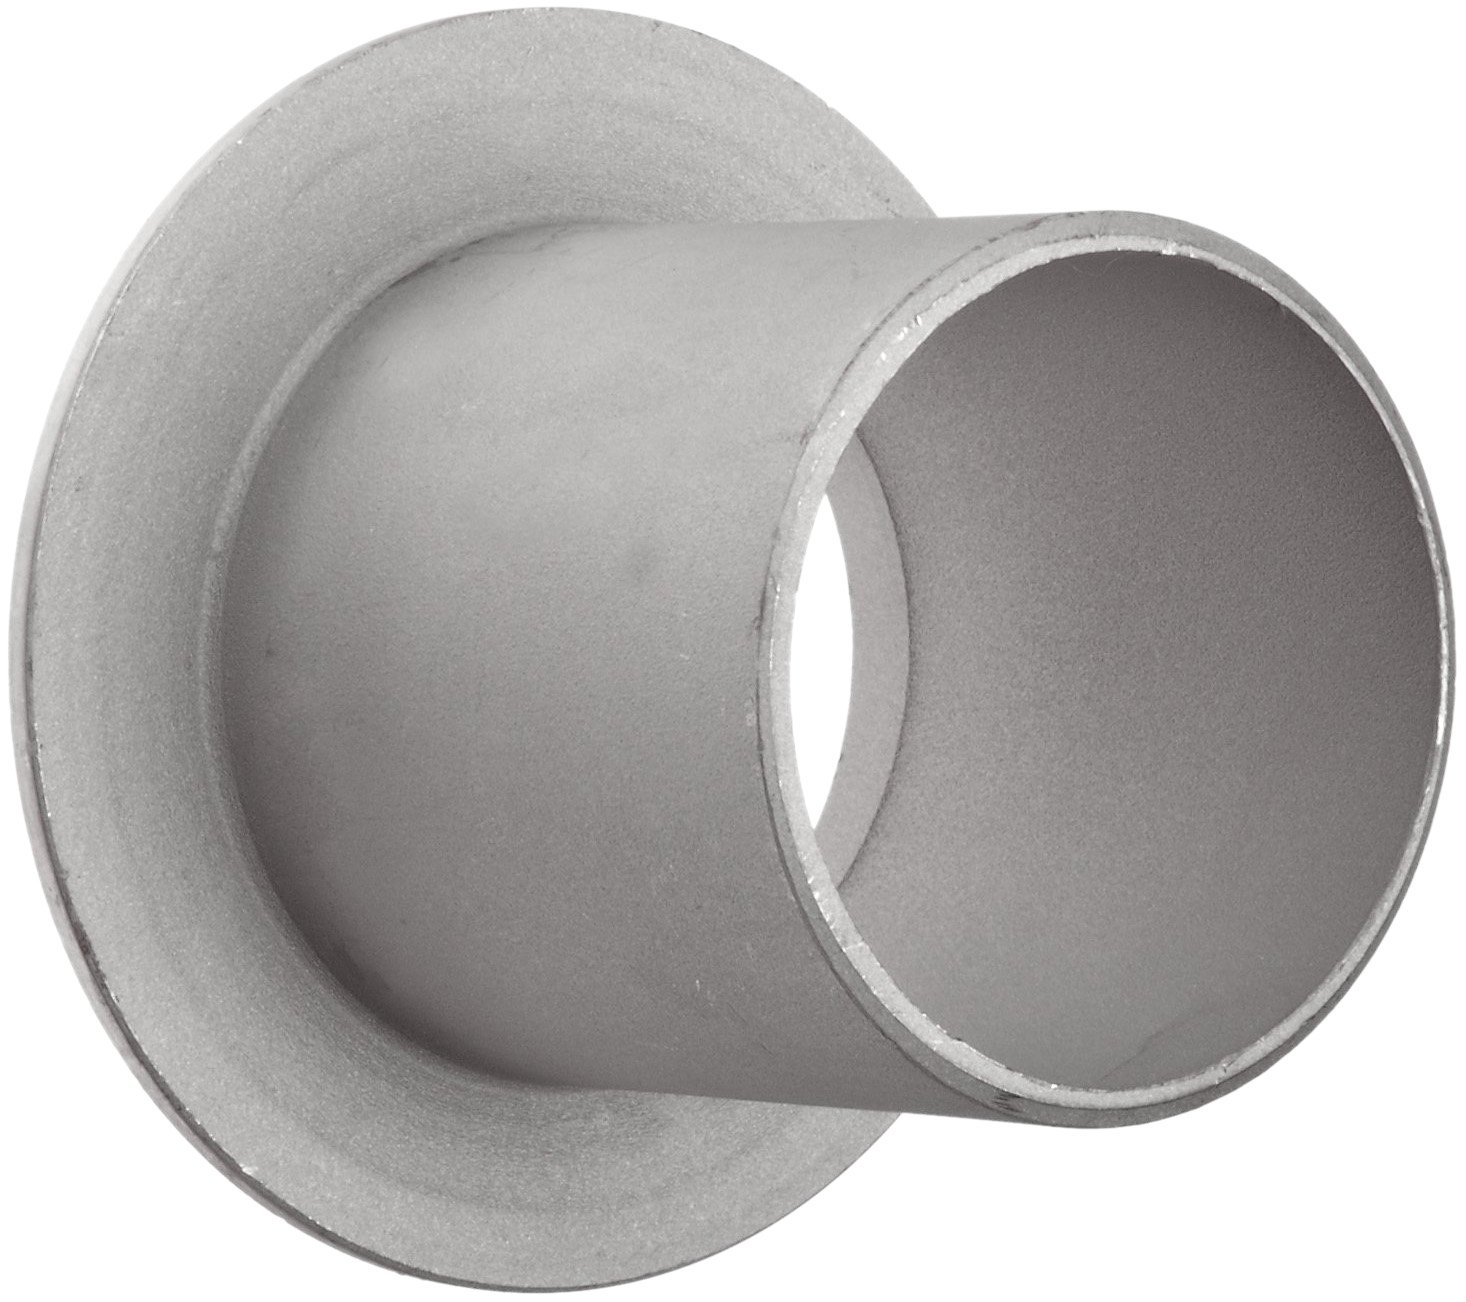 Stainless Steel 304/304L Pipe Fitting, Type C MSS Stub End, Butt-Weld, Schedule 10, 12'' Pipe Size by Merit Brass (Image #1)